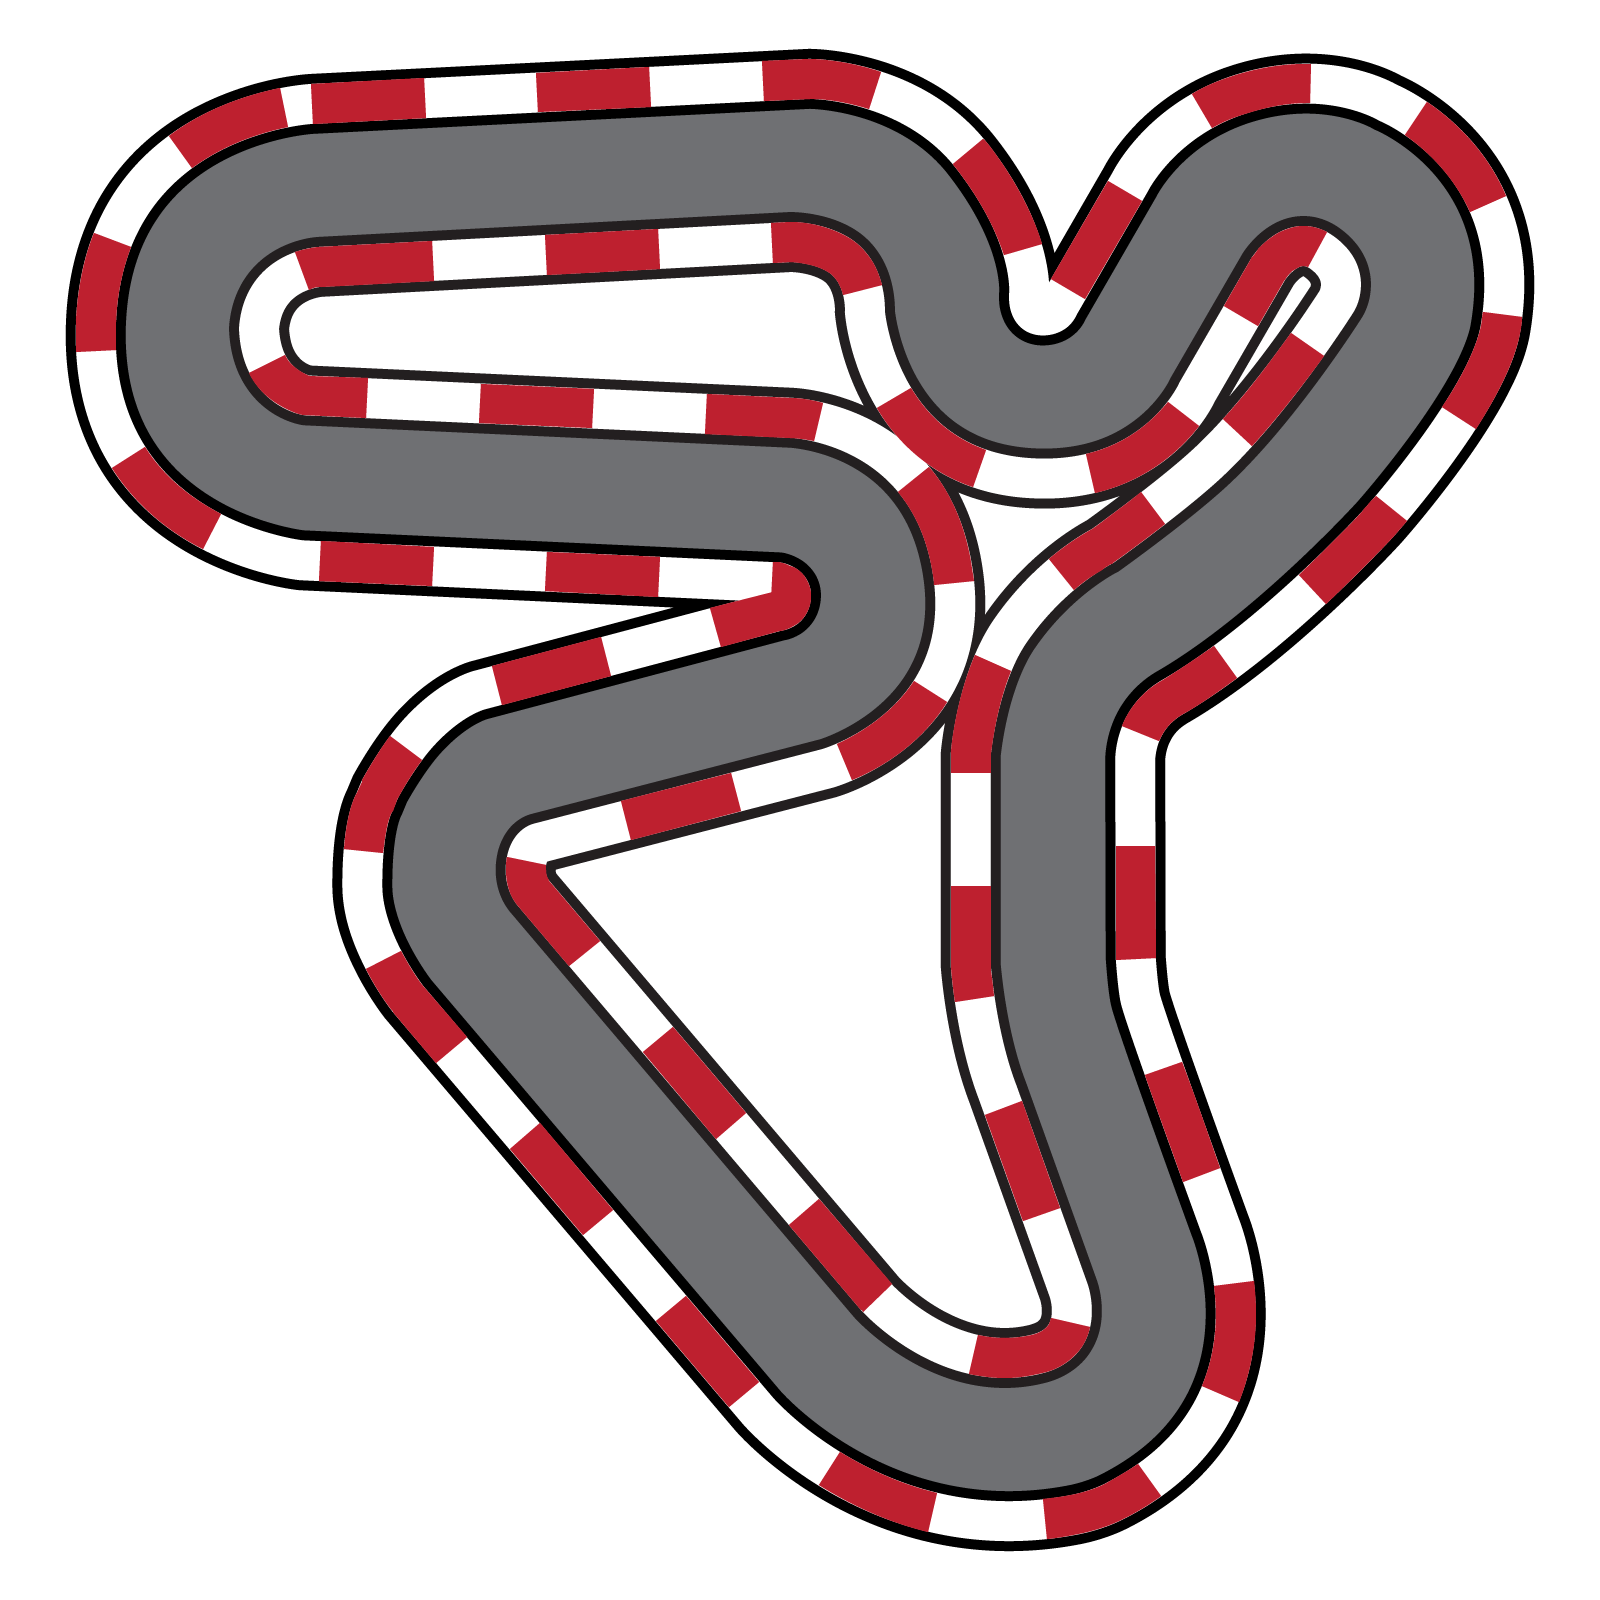 Race track clipart clipart images gallery for free download.